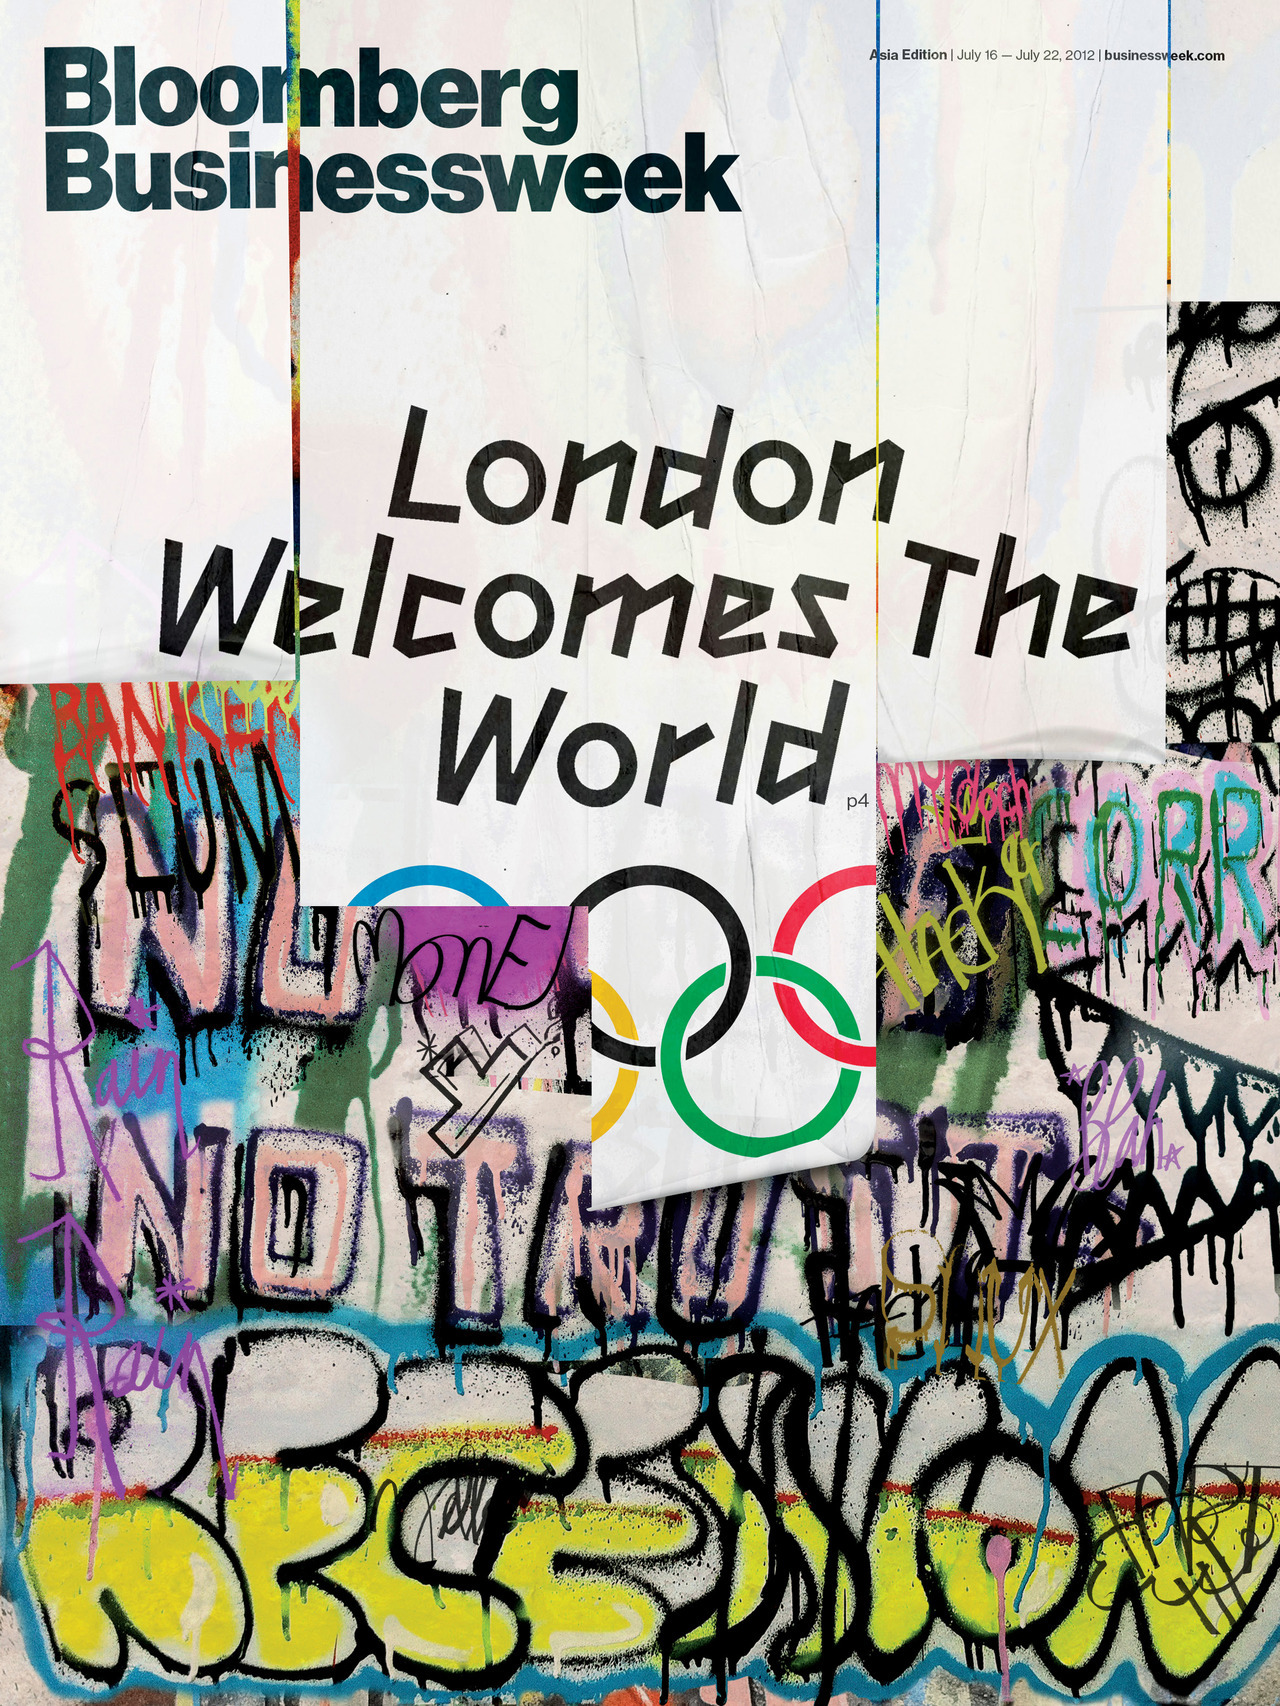 London Welcomes the World! Illustration by Ted McGrath